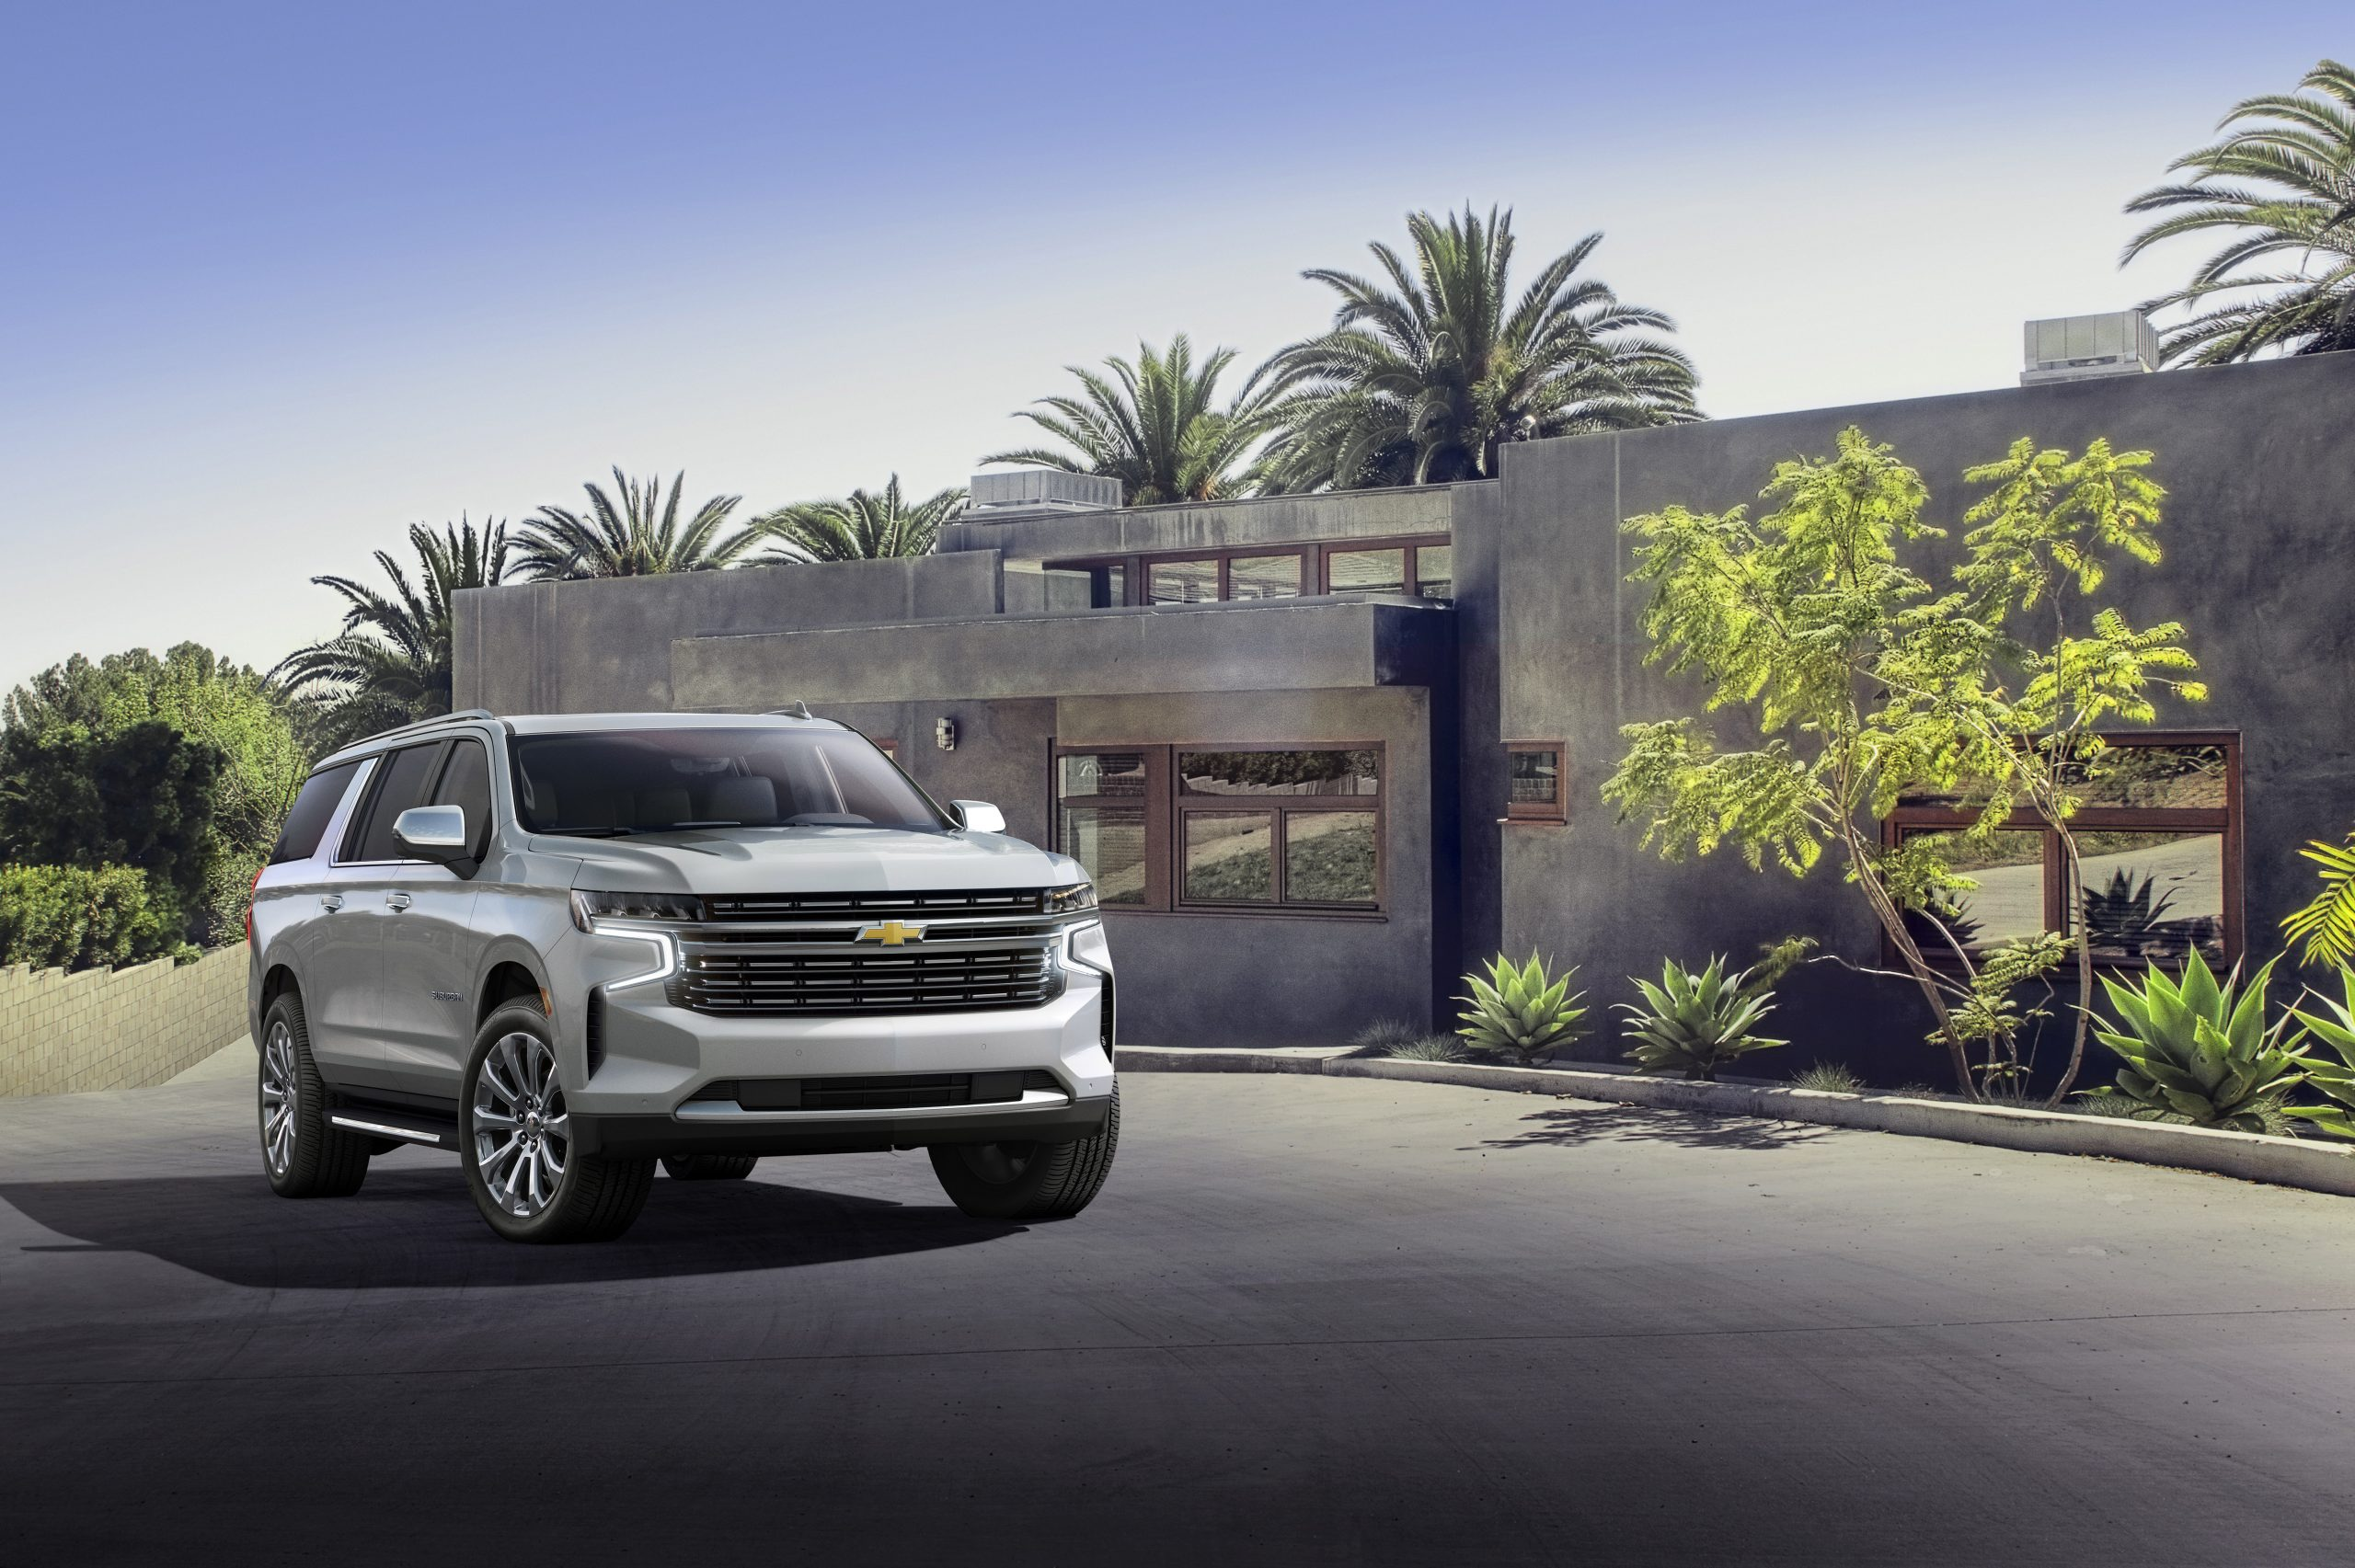 Chevrolet Introduces All-New 2021 Tahoe And Suburban 2021 Chevy Suburban Used, Upgrades, Weight